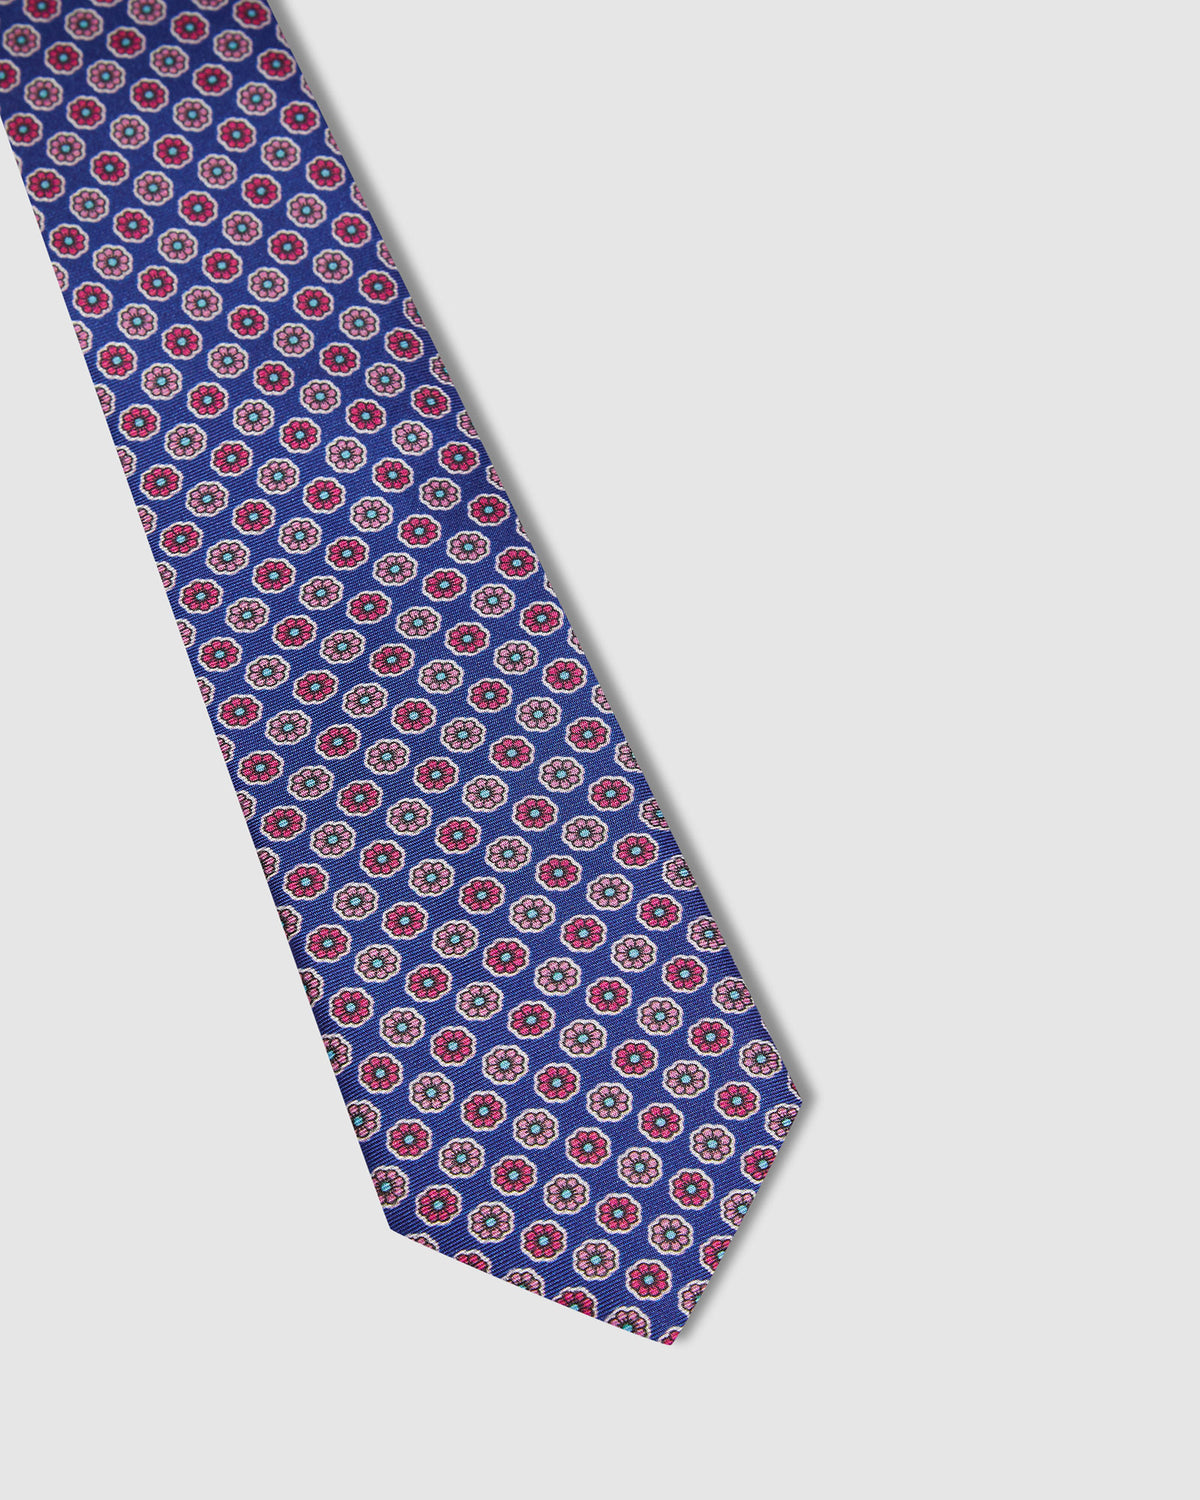 DAISY TIE BLUE/PINK